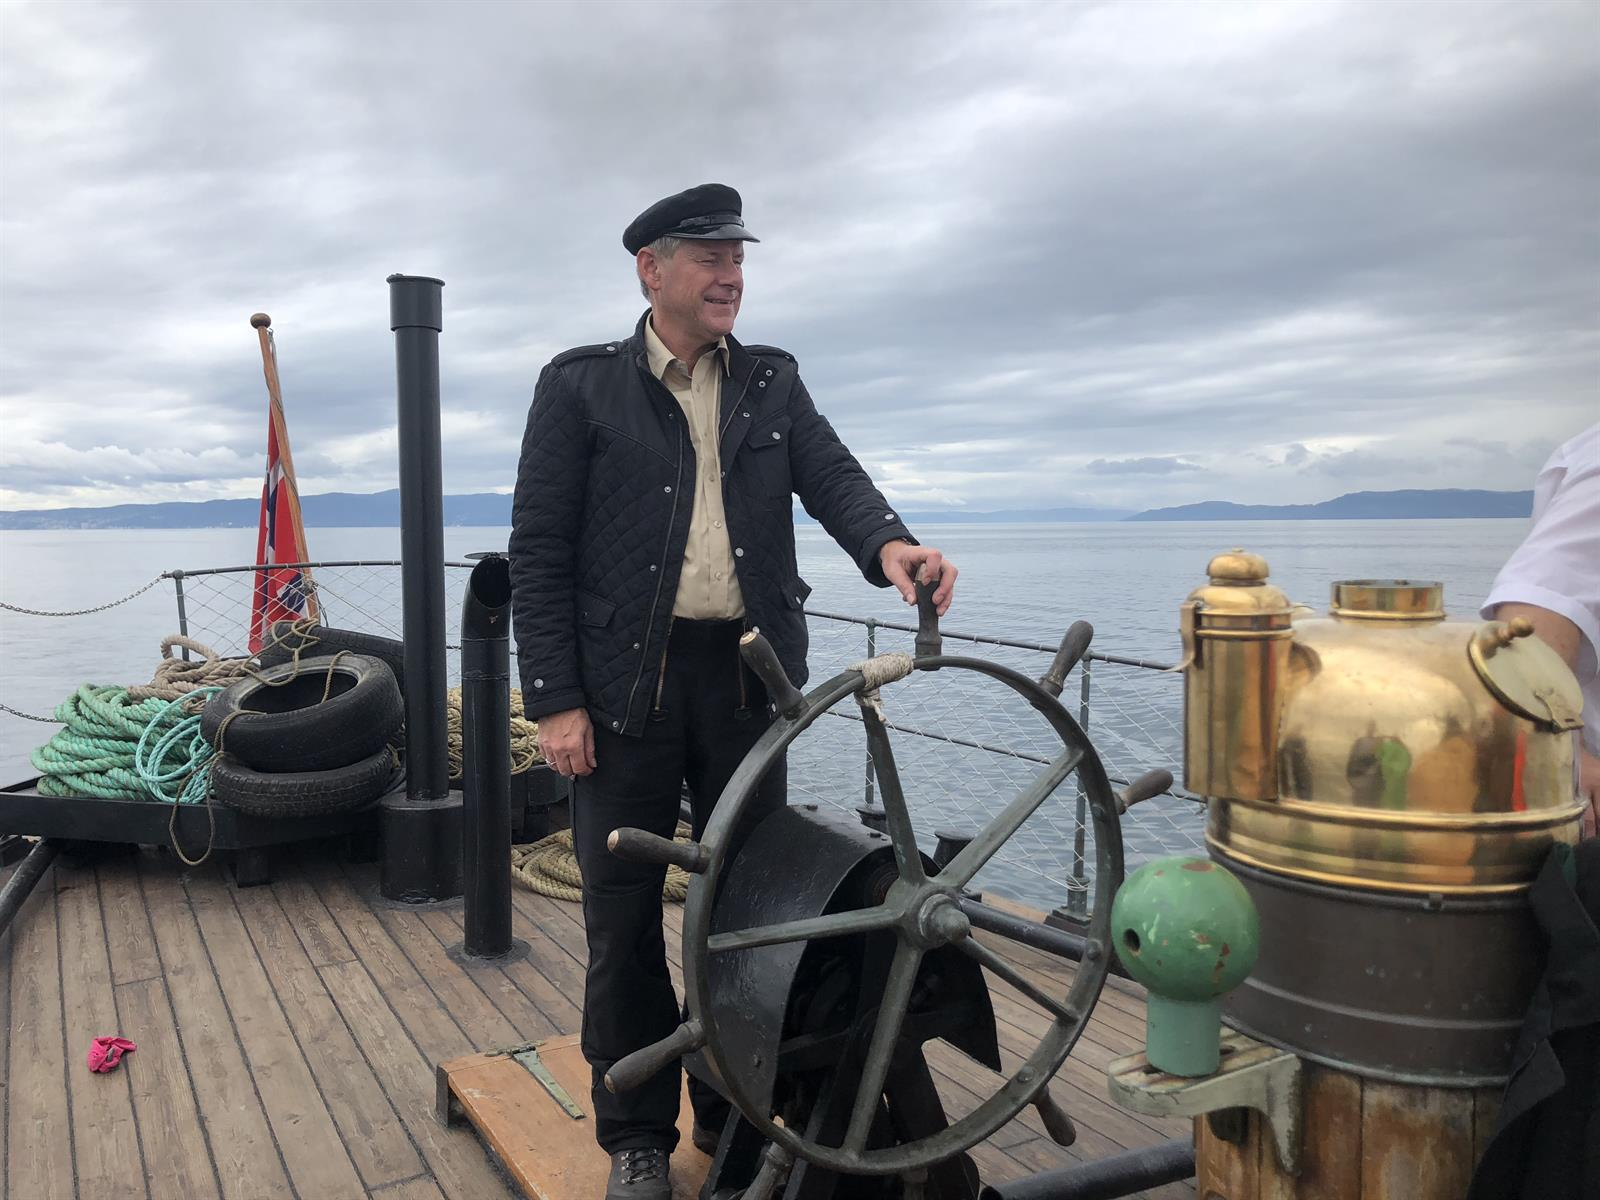 Day 3 of An adventurous voyage on the Trondheimsfjorden